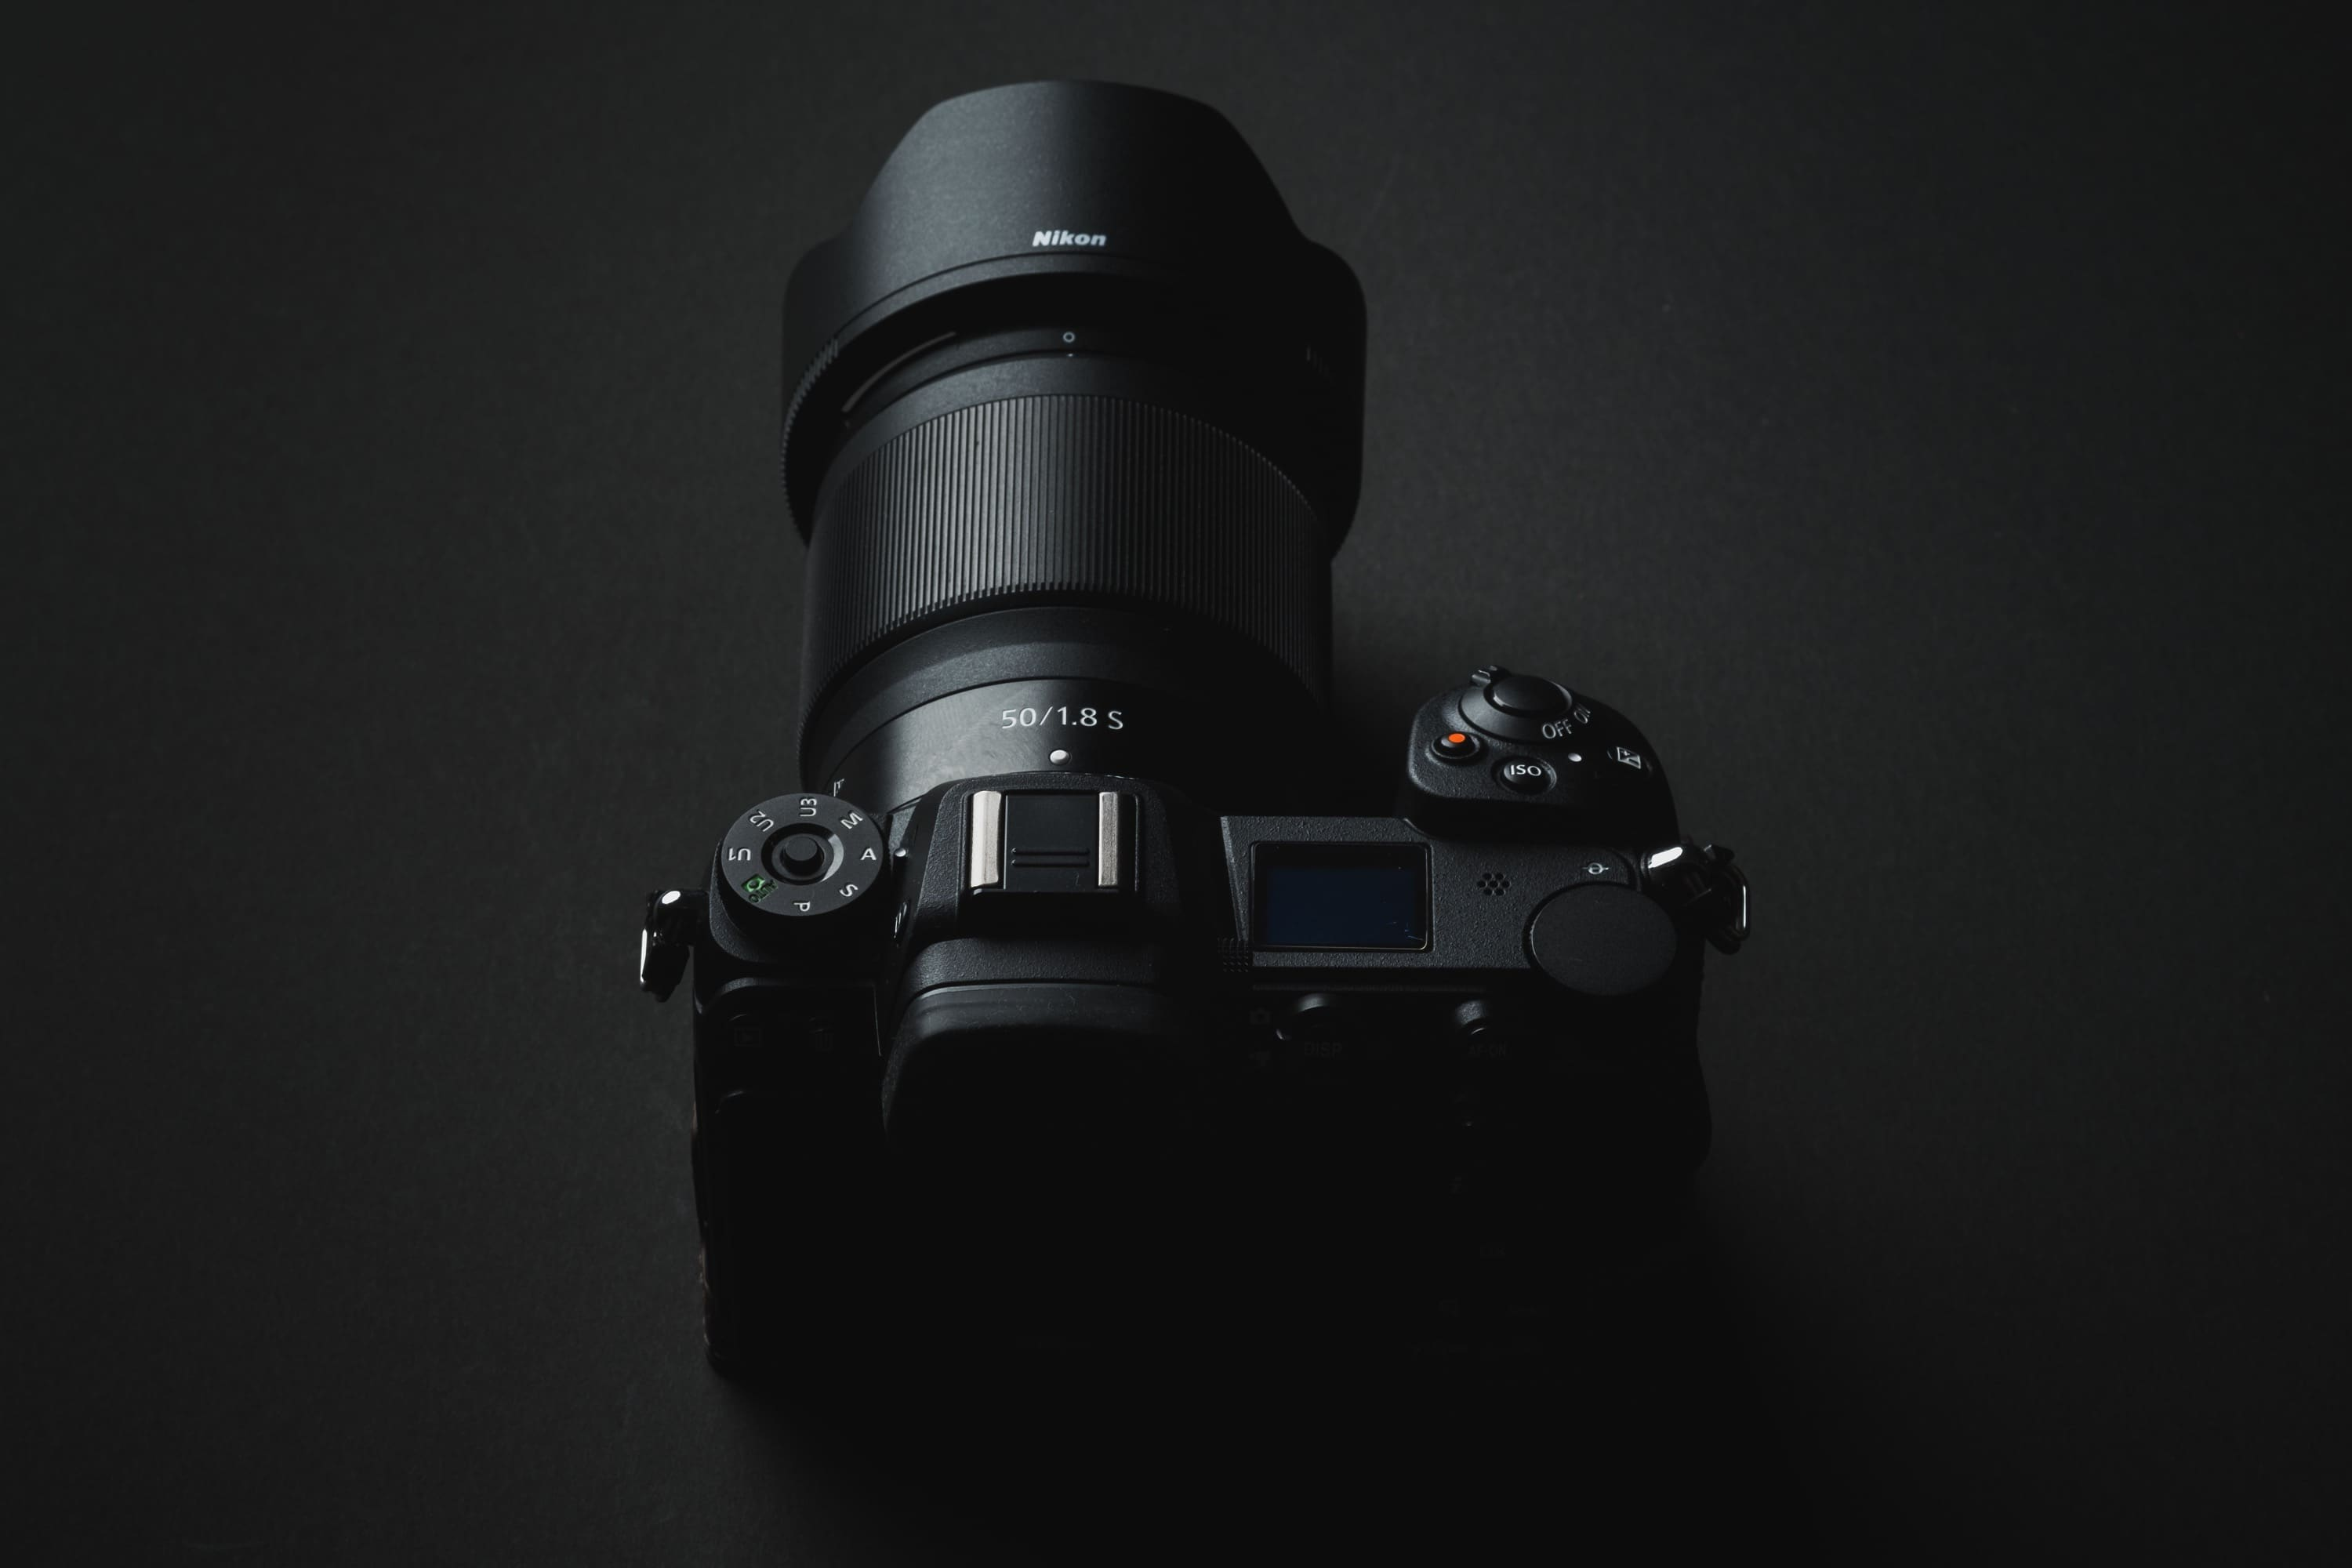 Nikon 50mm f1.8 S Product Shot On Z 6